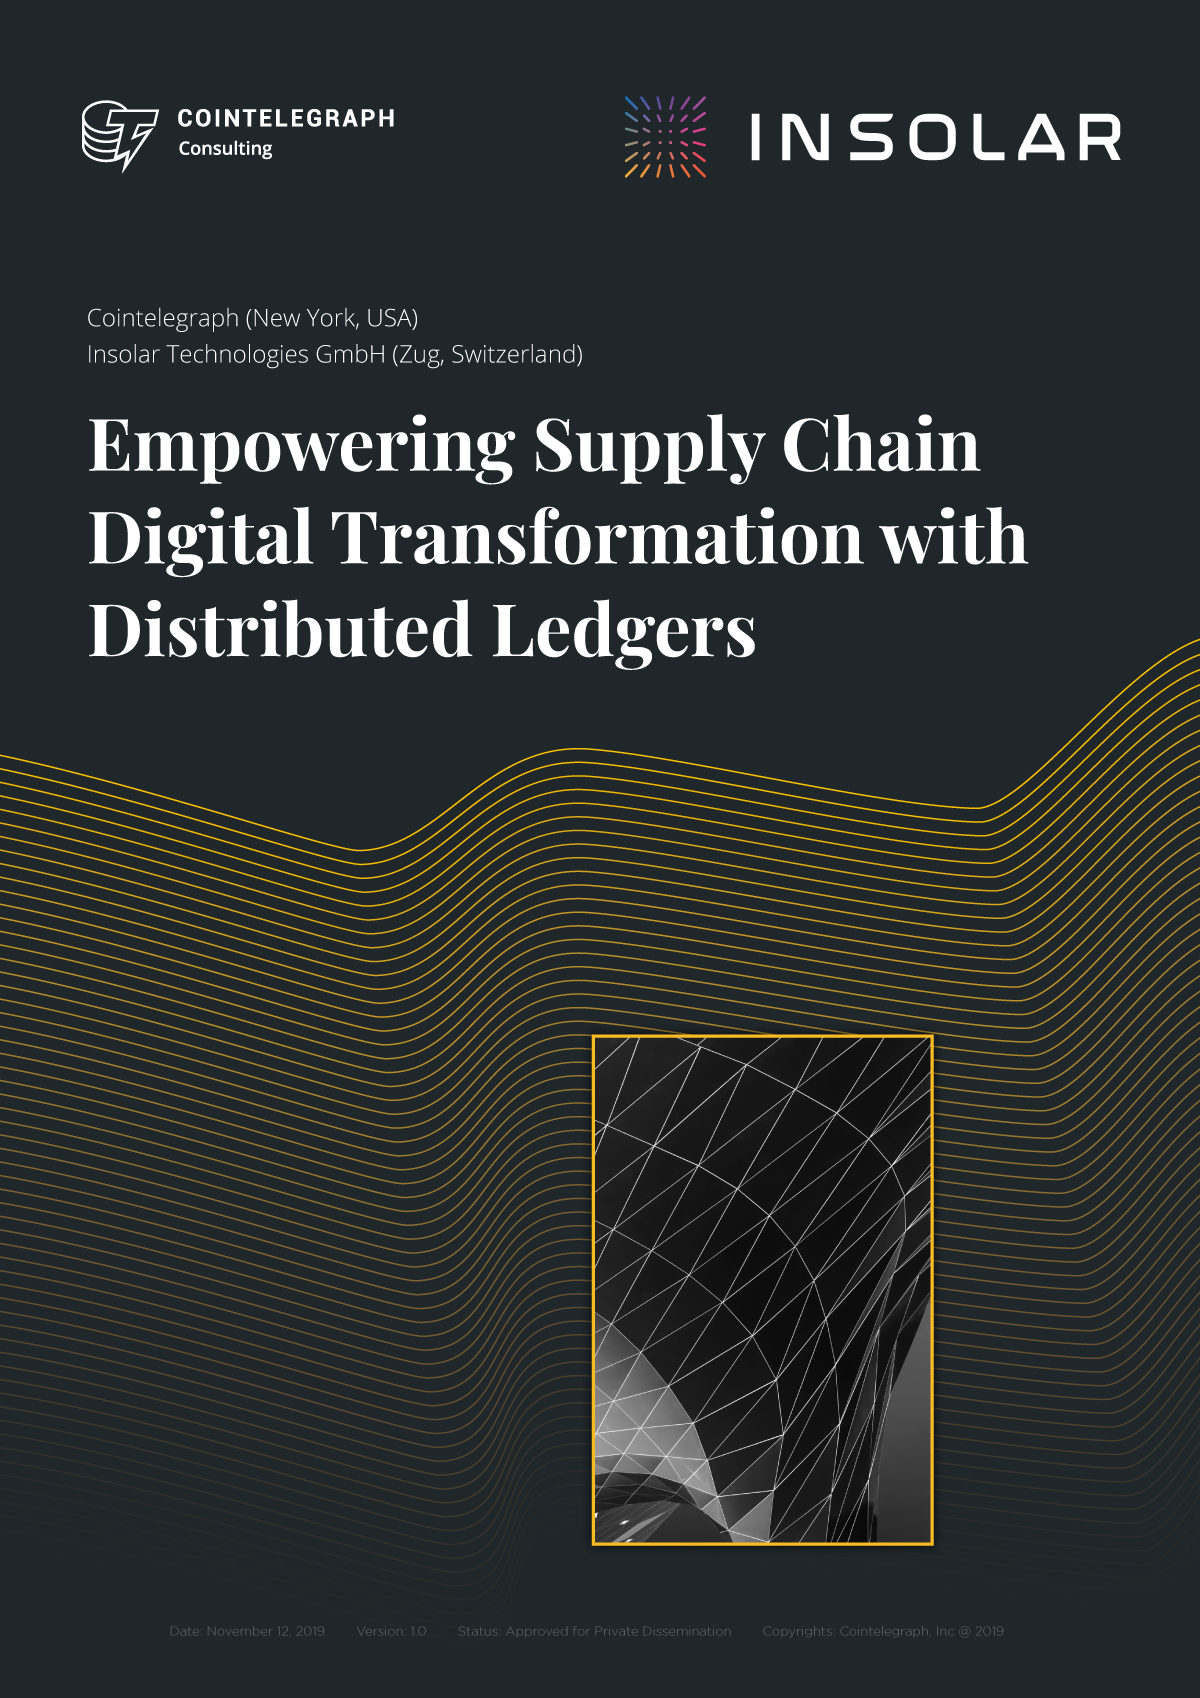 Empowering Supply Chain Digital Transformation With Distributed Ledgers